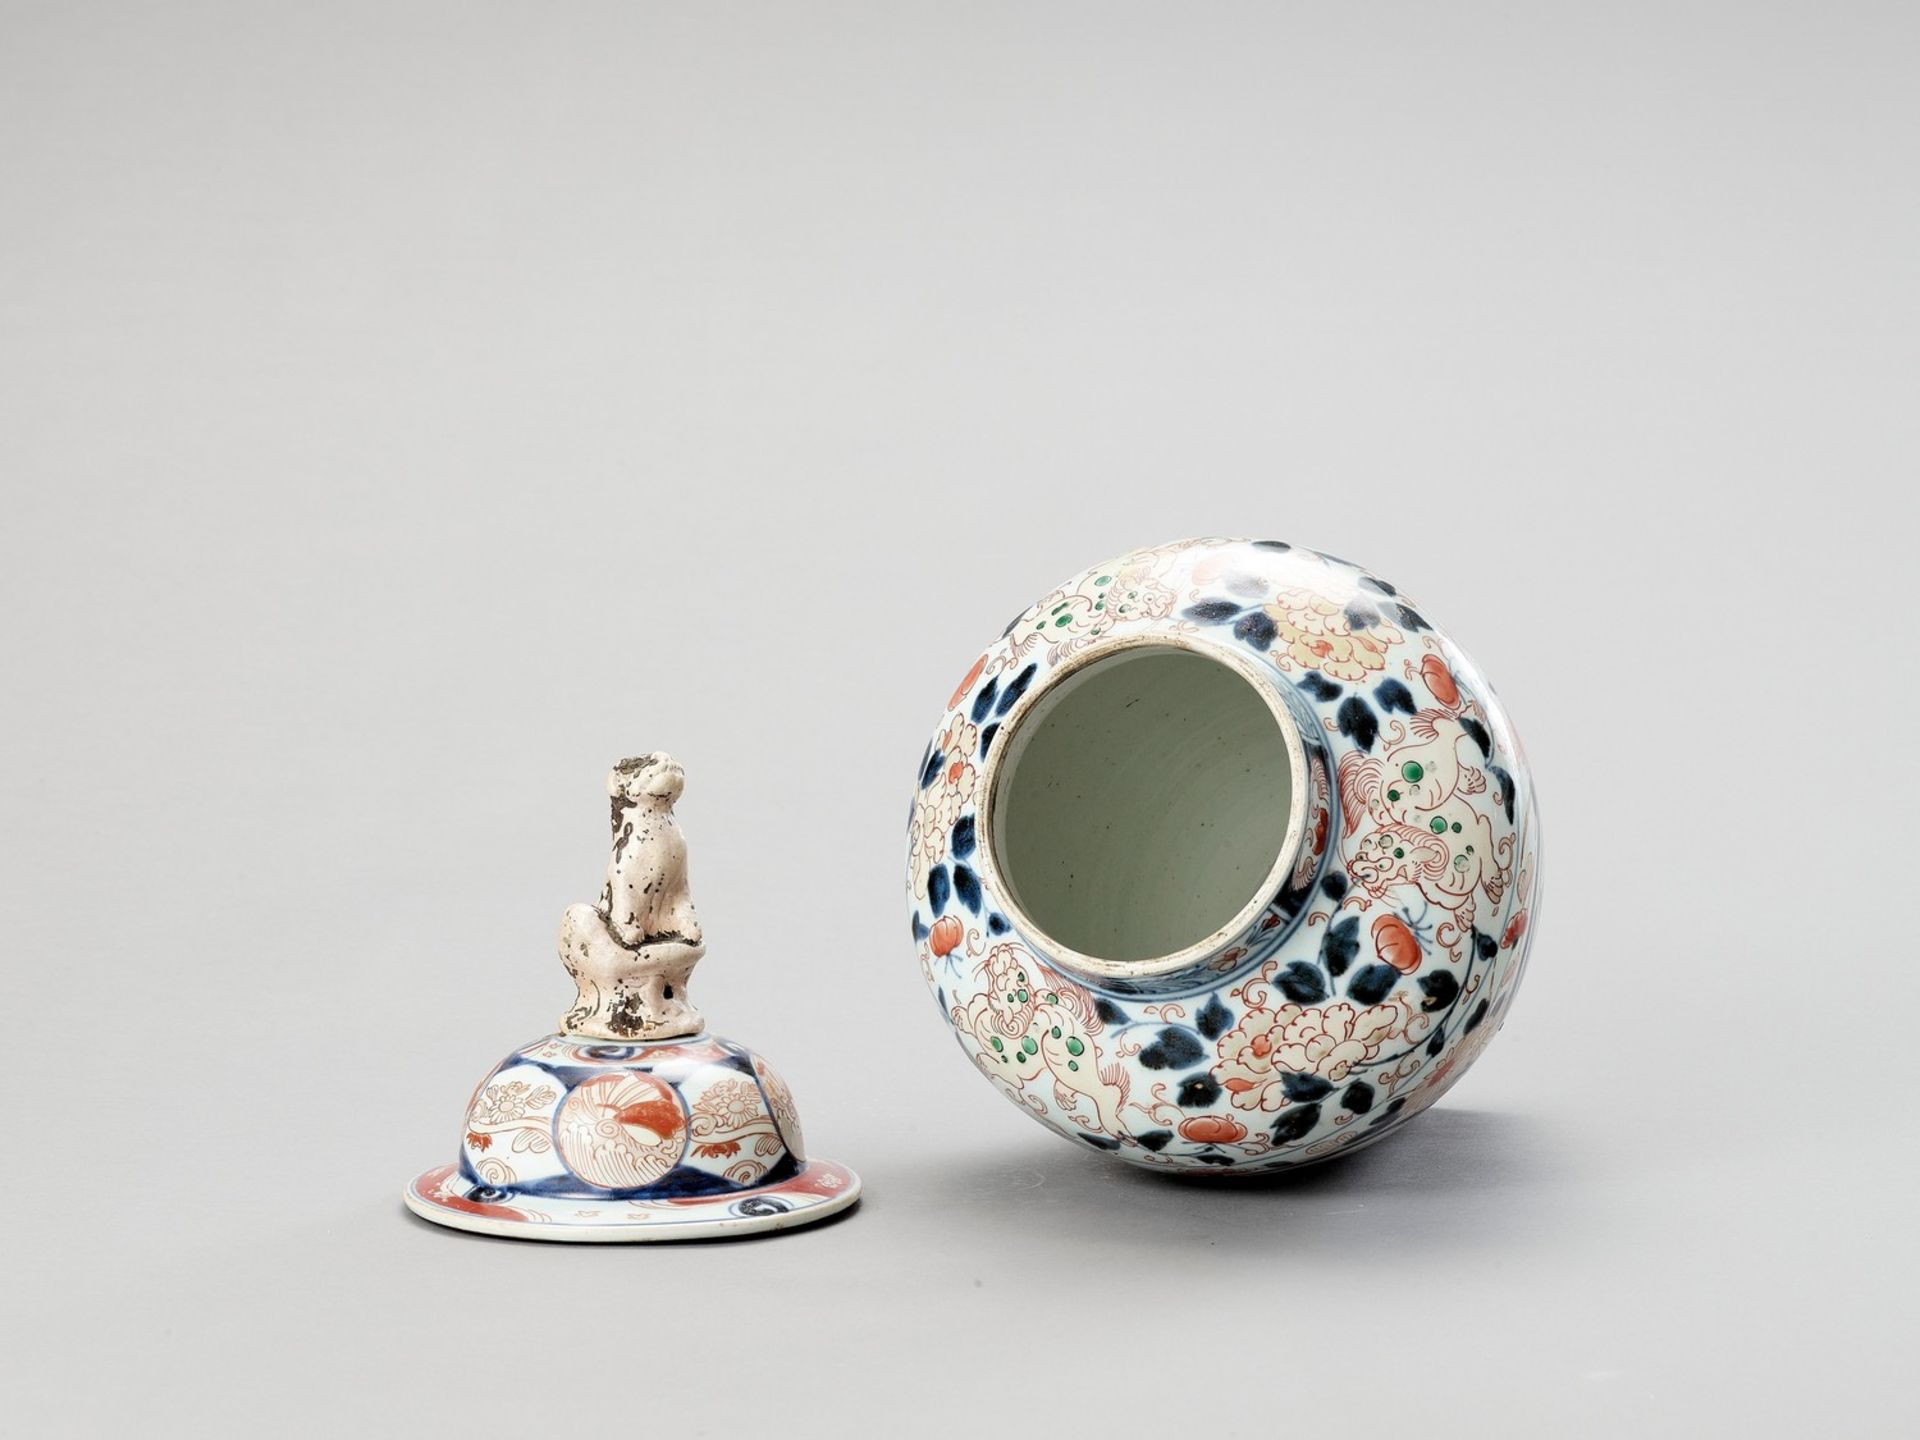 A LARGE IMARI PORCELAIN VASE AND COVER - Image 4 of 5